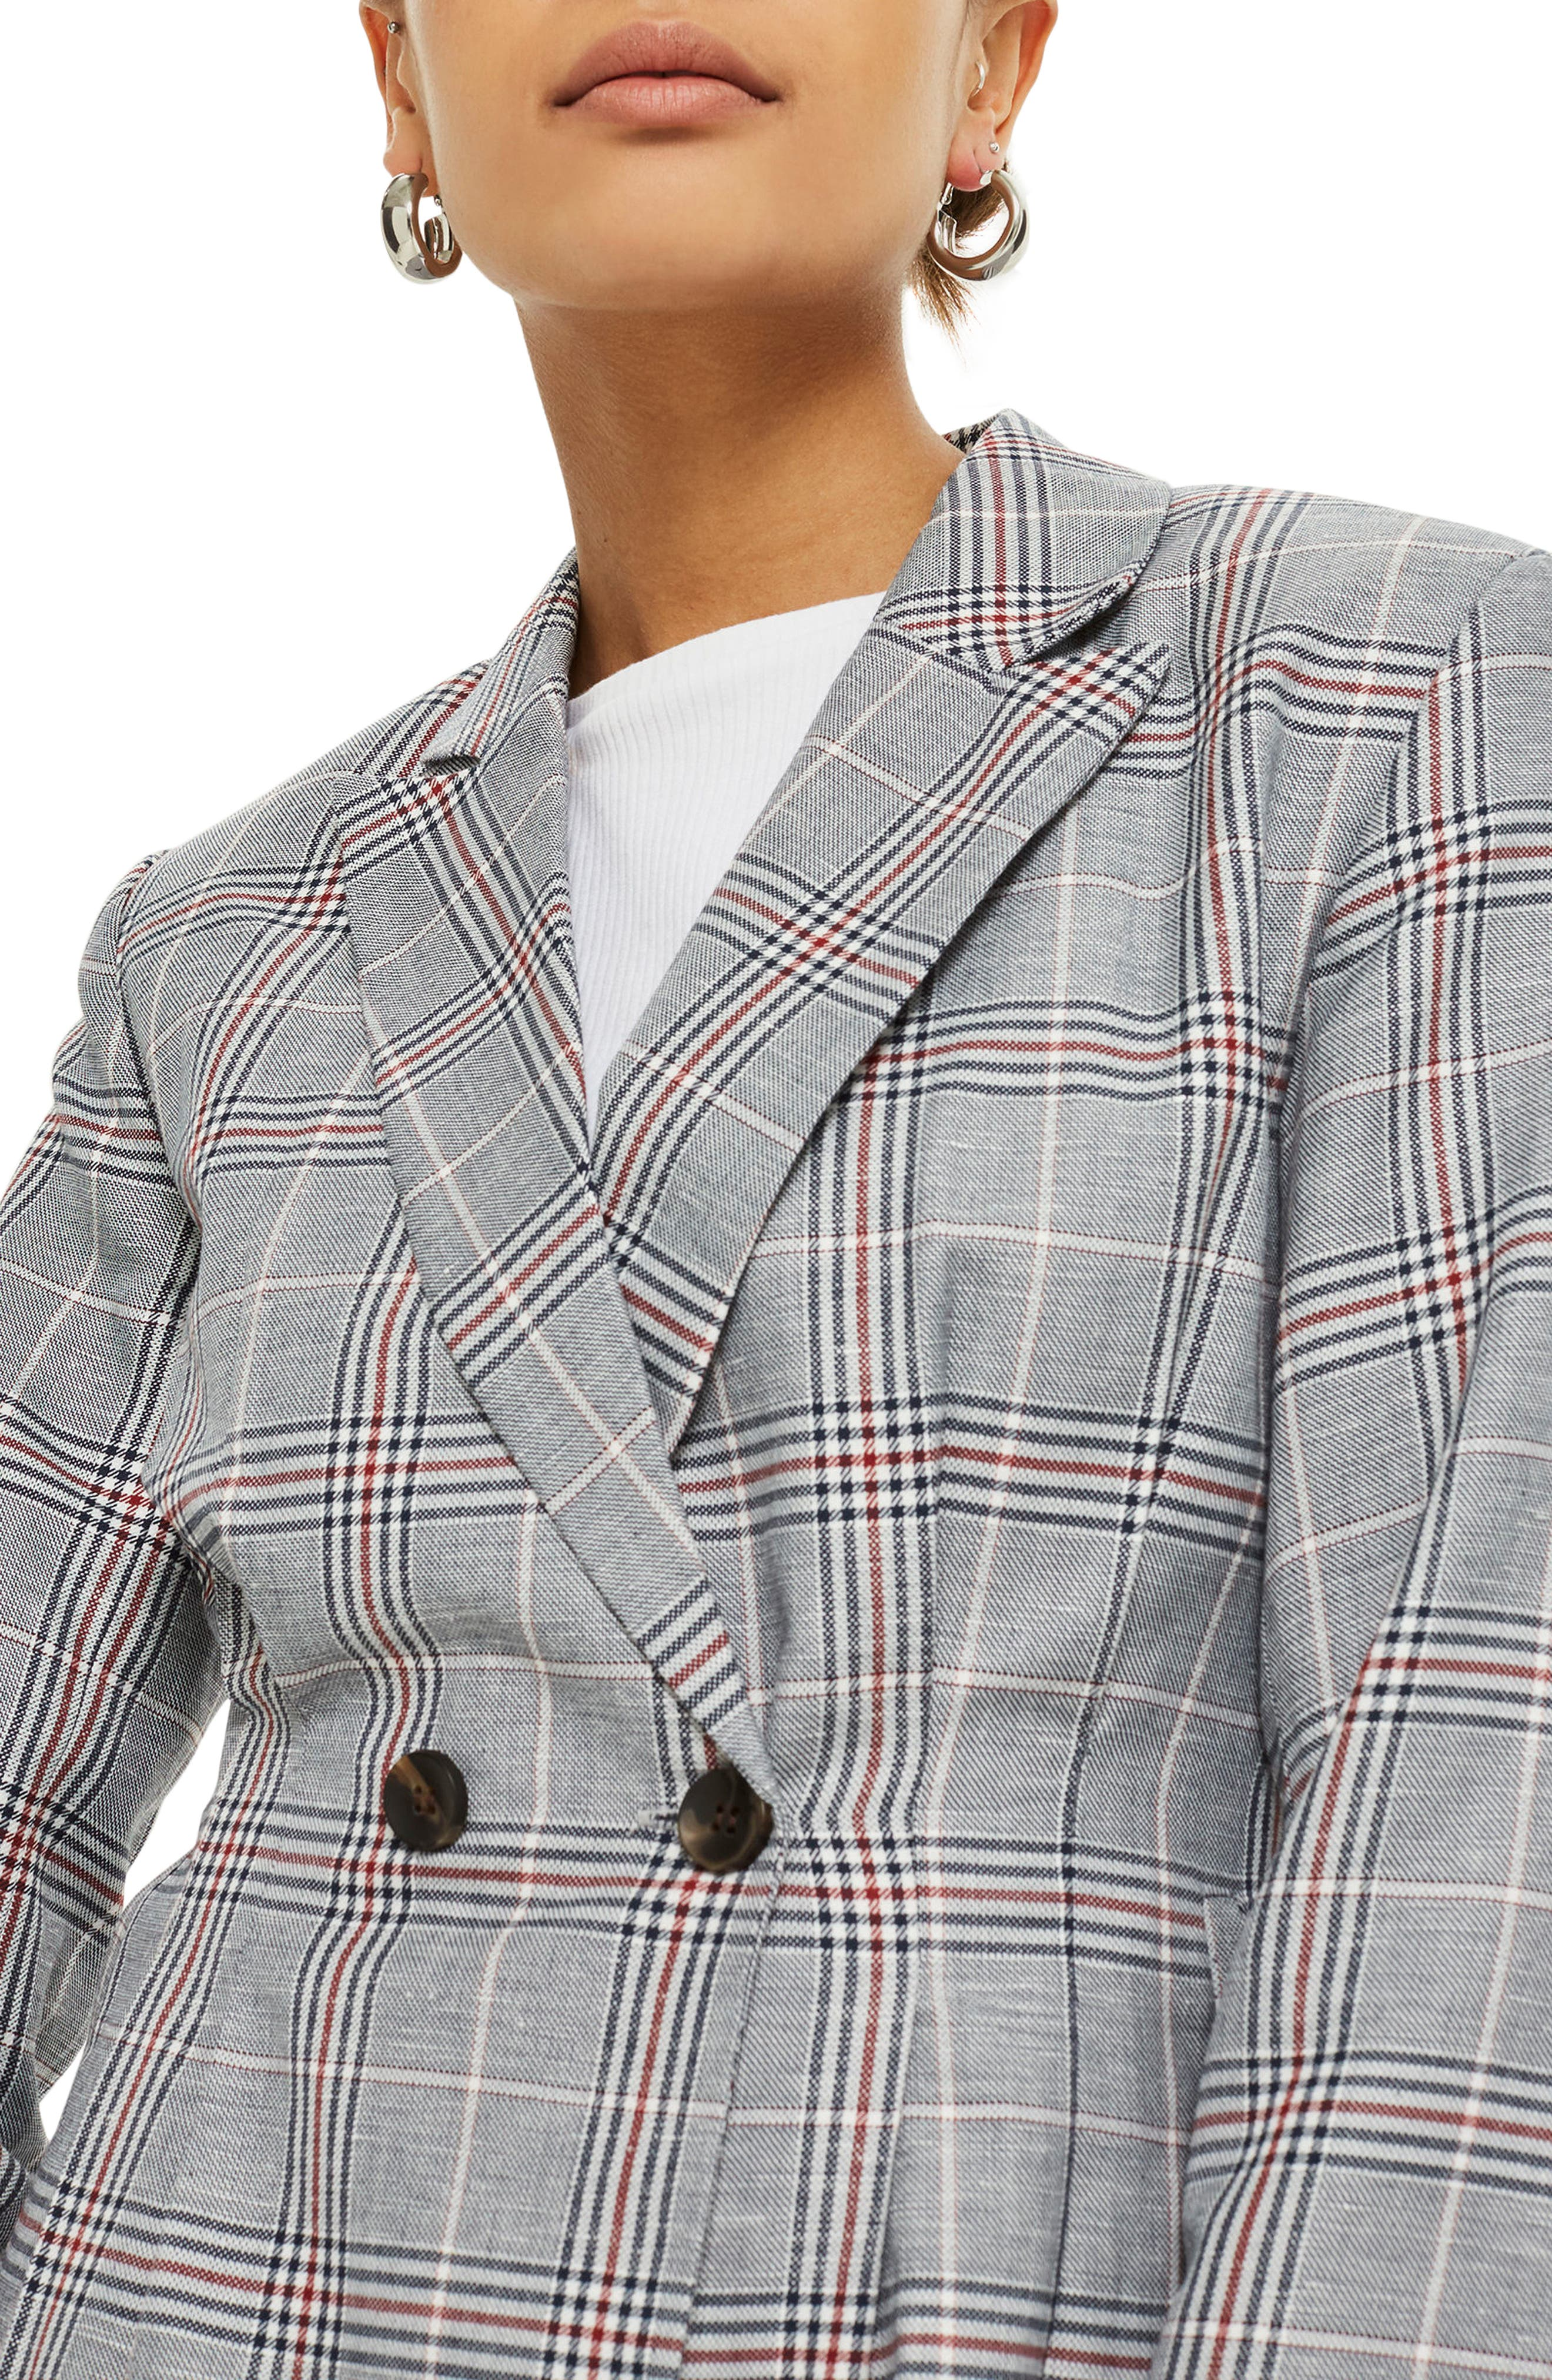 Cham Linen Checkered Jacket,                             Alternate thumbnail 3, color,                             021